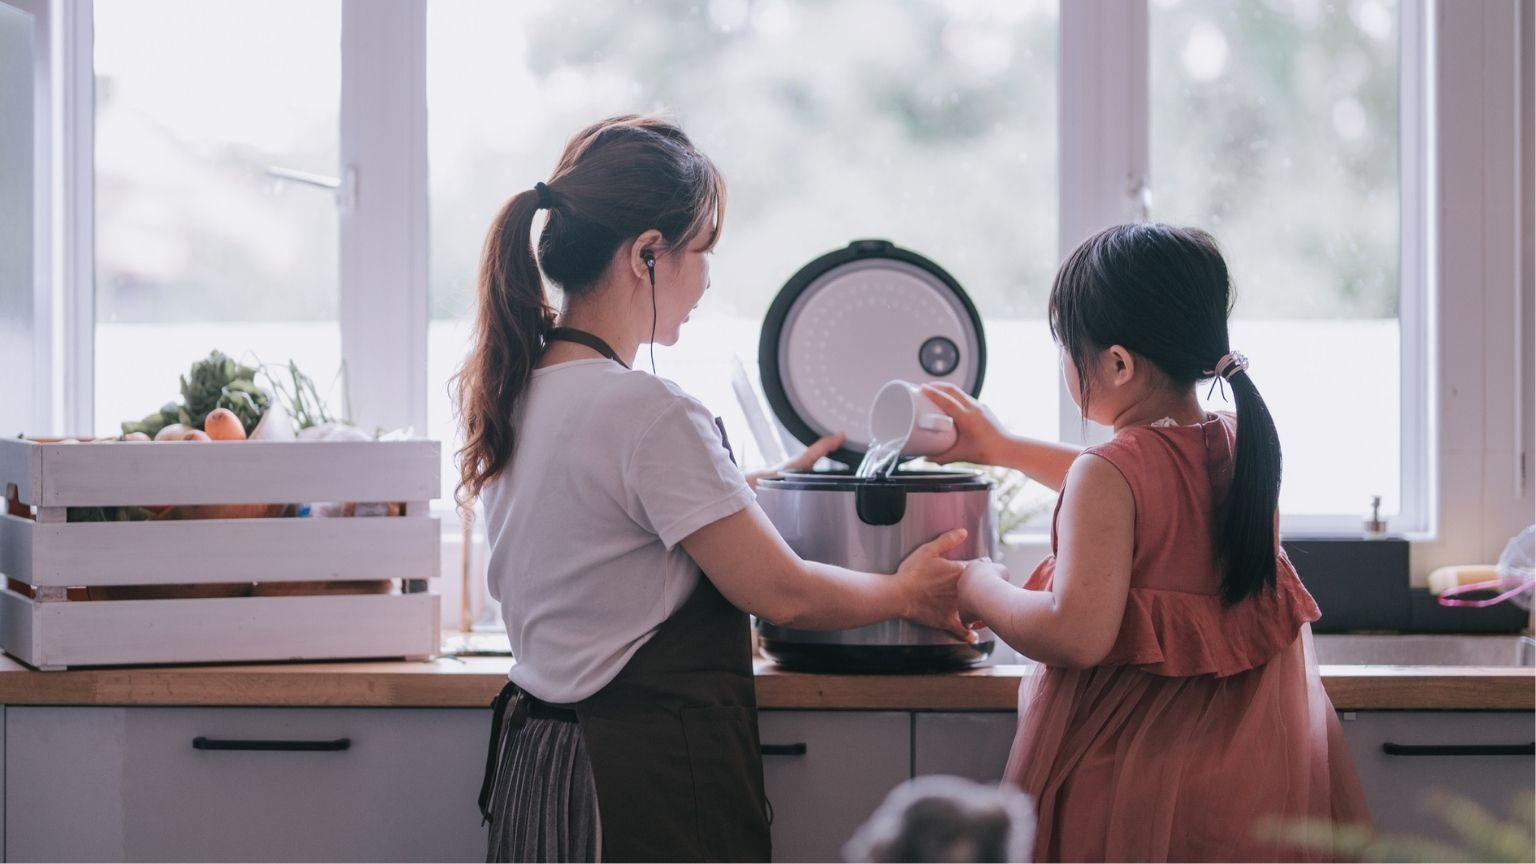 mother cooking preparing food at kitchen with her daughter